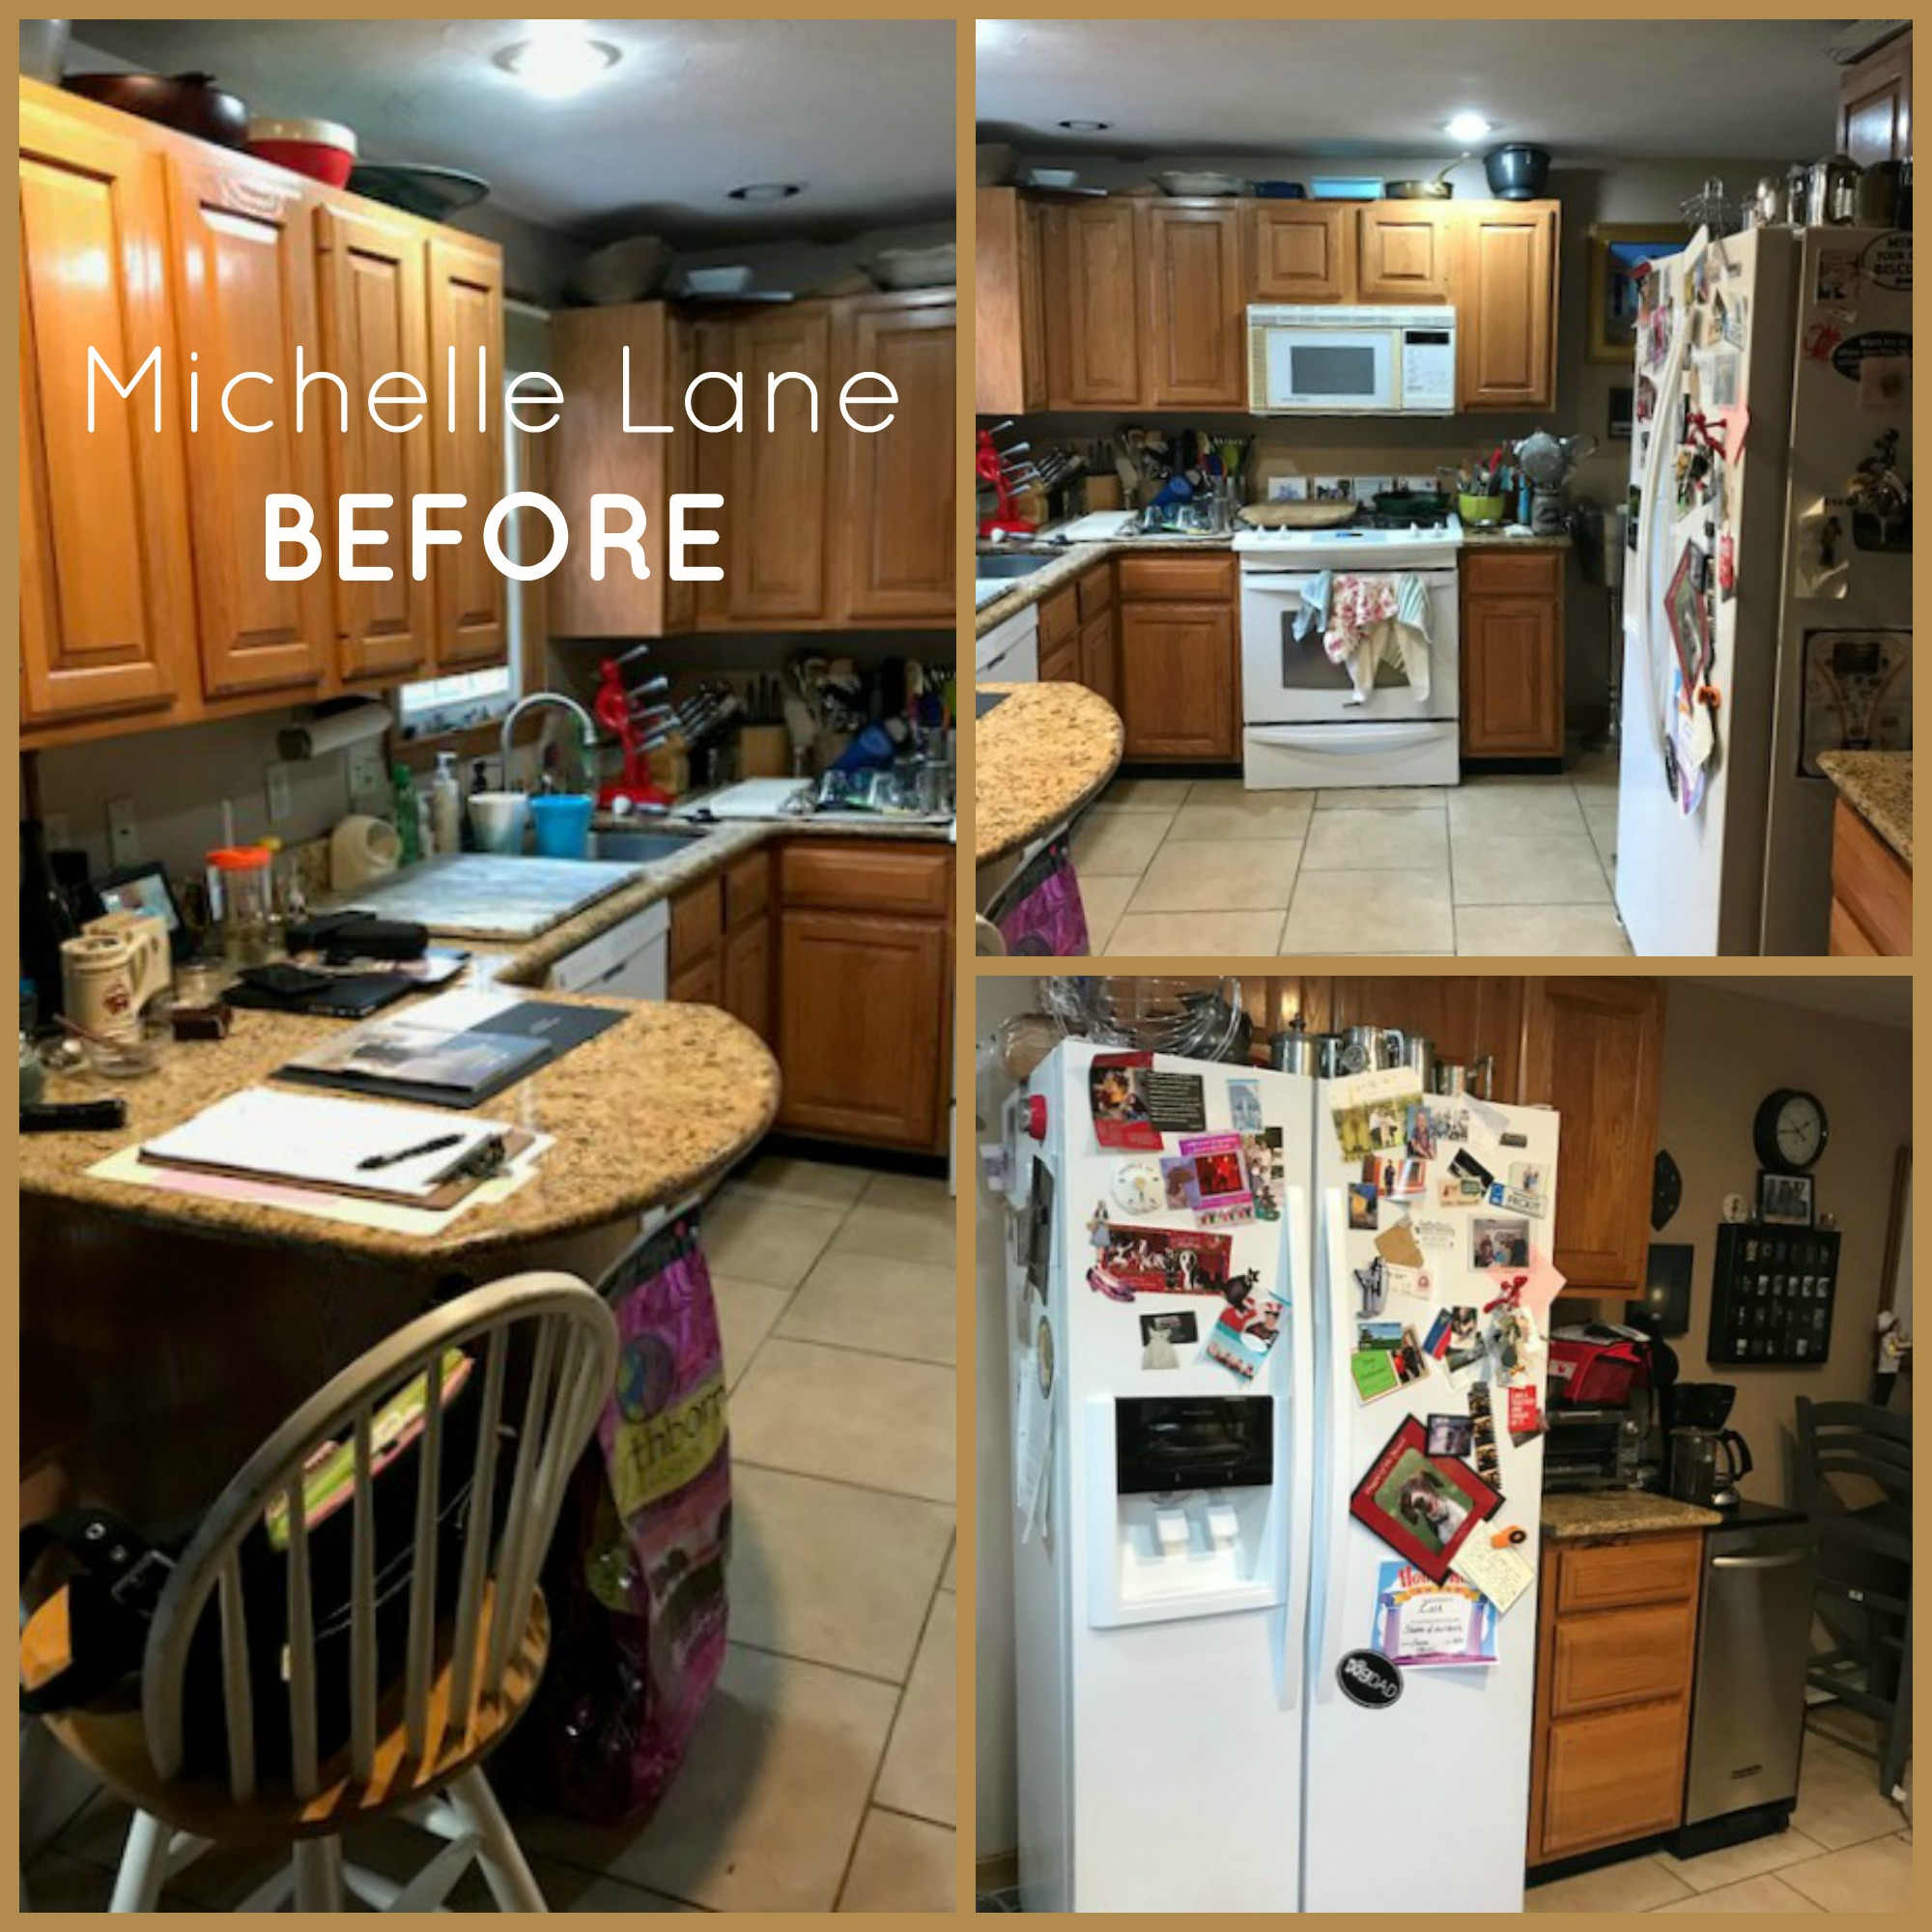 MichelleLane Before (1).jpg